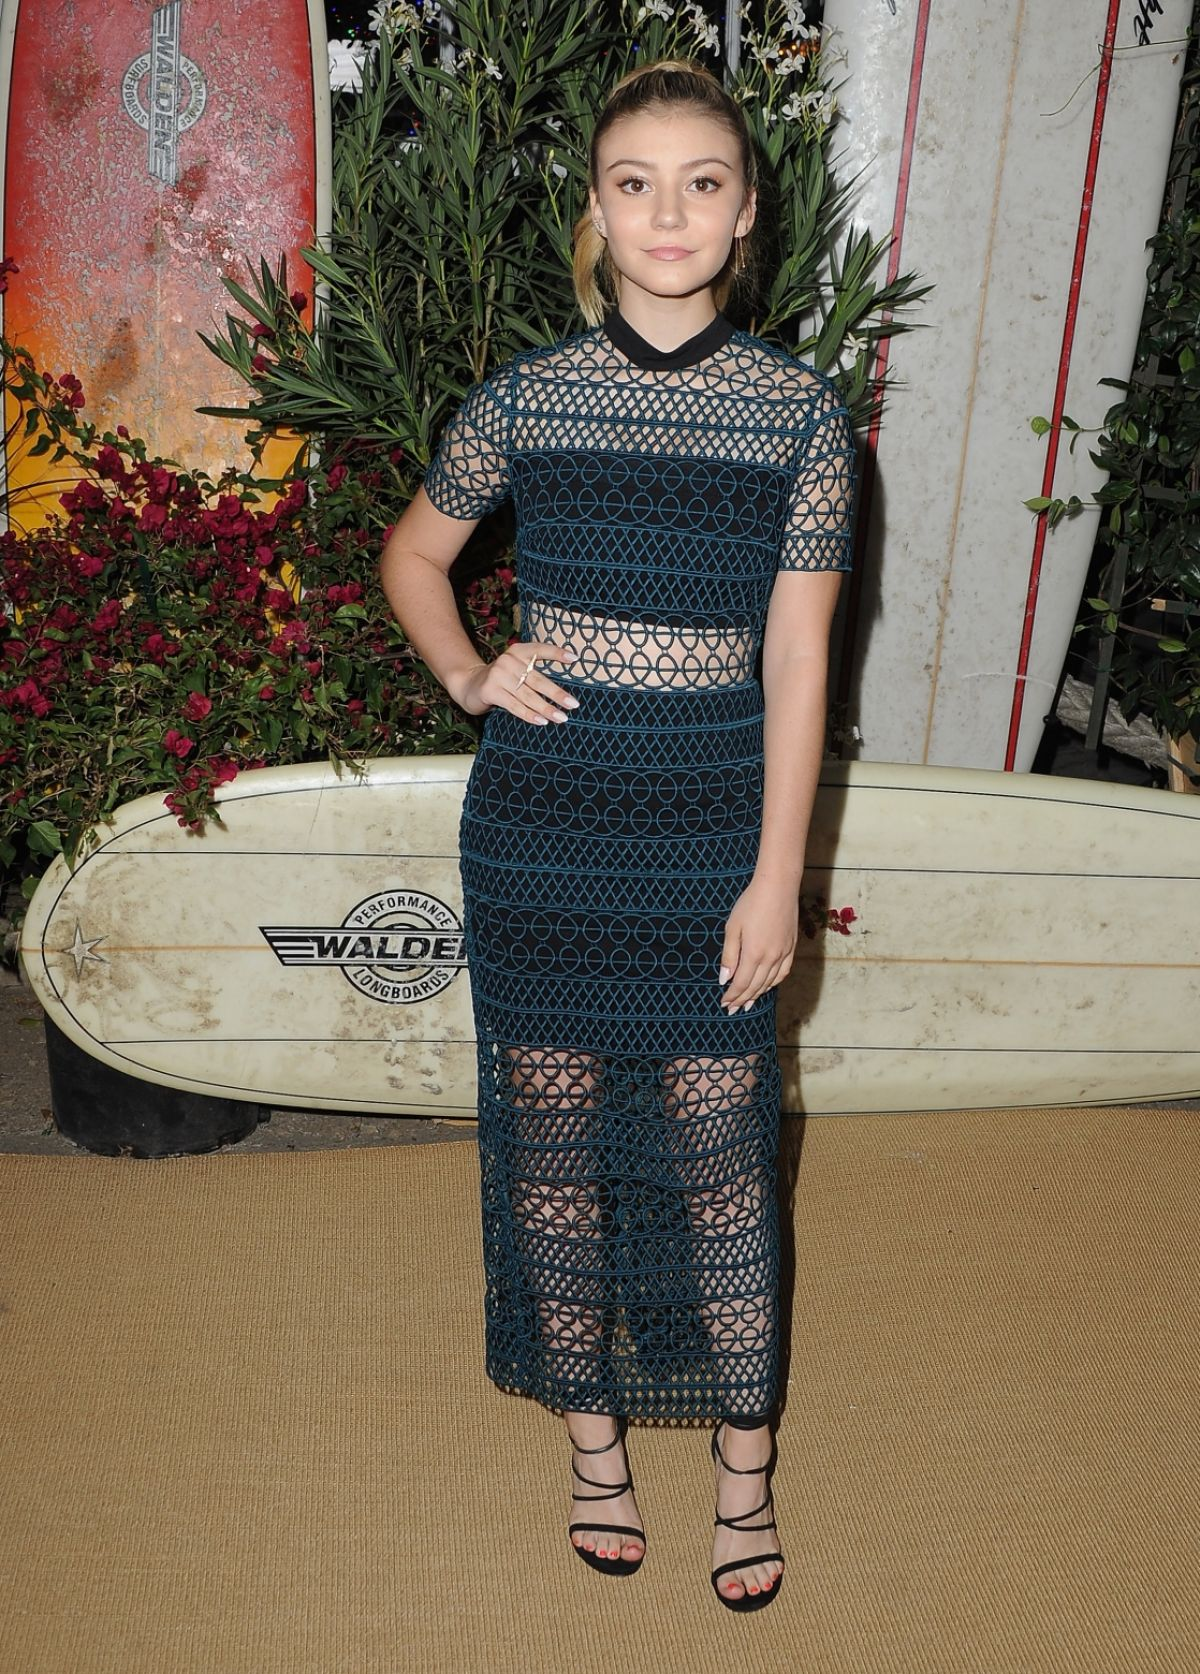 GENEVIEVE HANNELIUS at Teen Vogue Young Hollywood Party in Los Angeles 09/23/2016